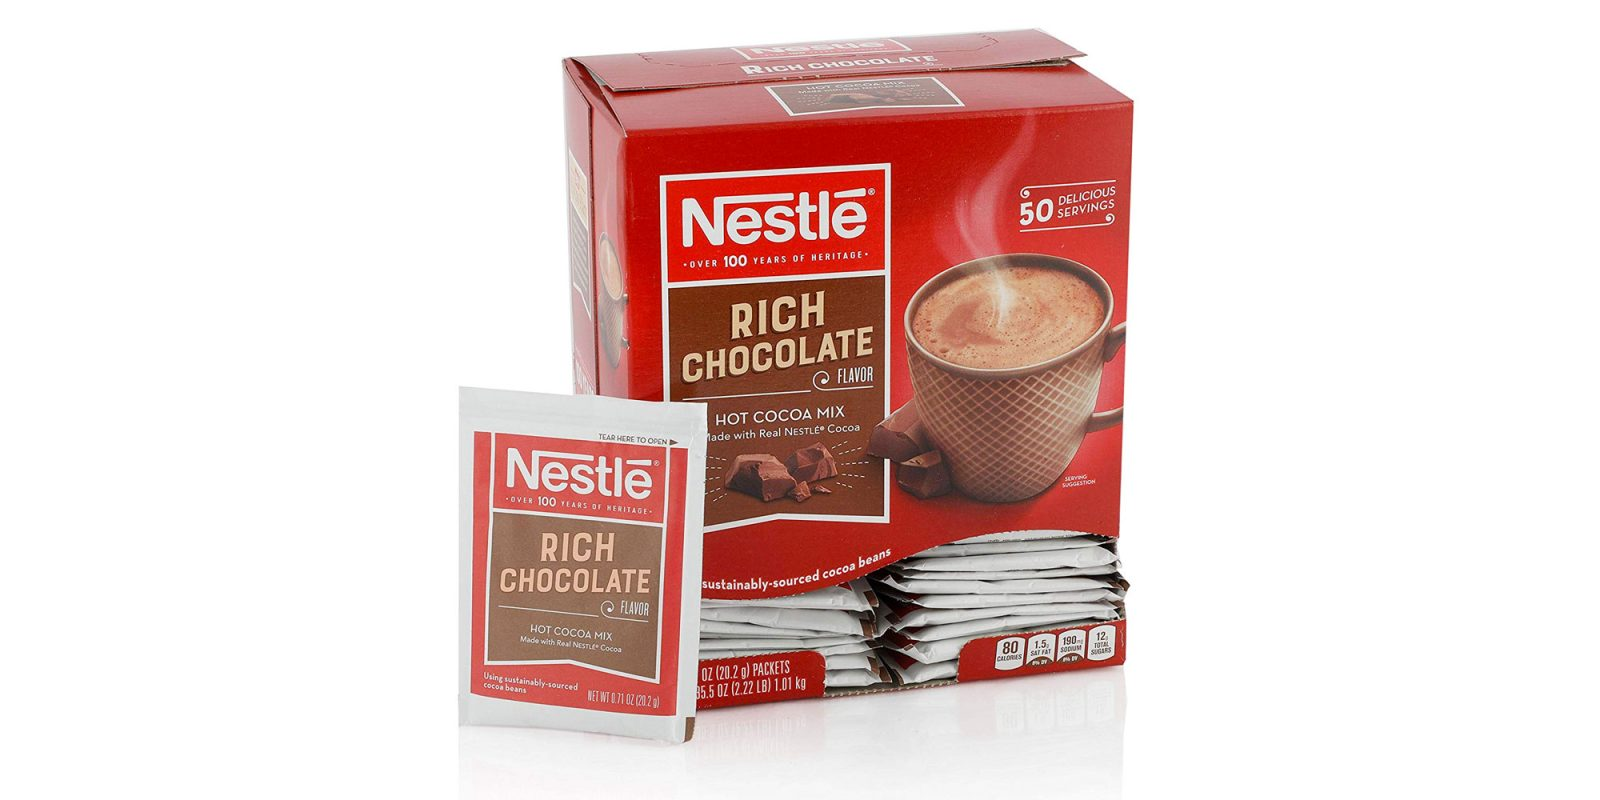 Stay warm with 50 cups of Nestle Hot Chocolate for $0.10 each